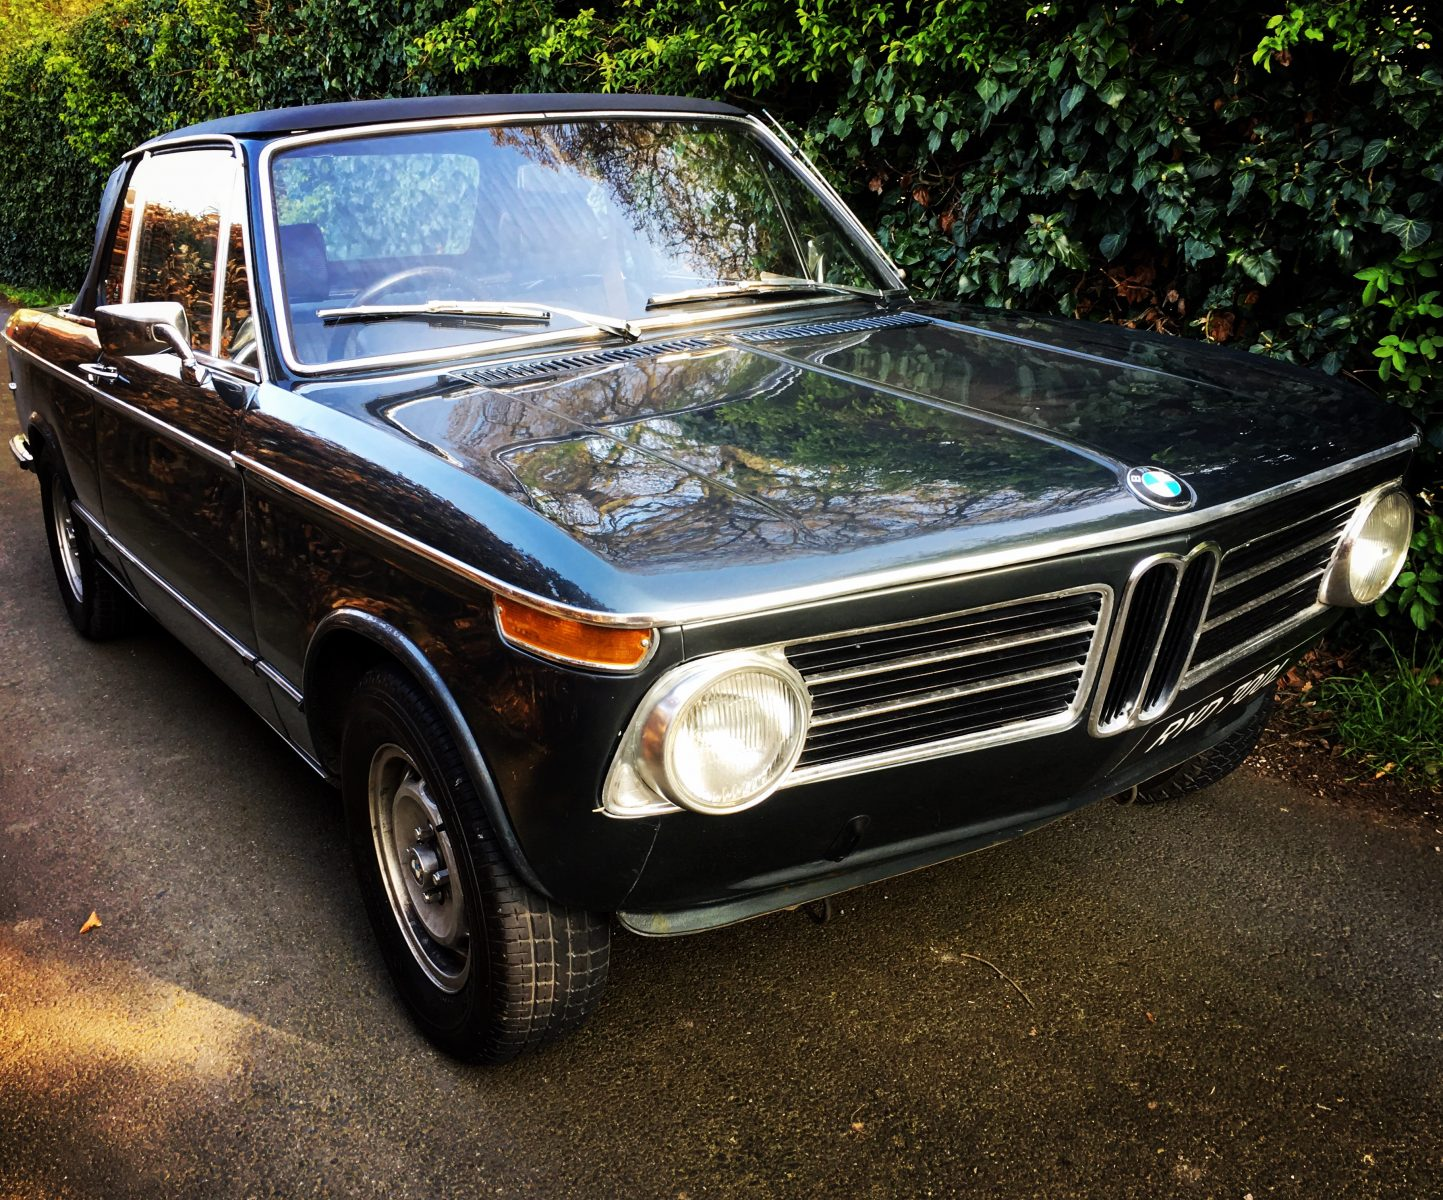 Driving home in our 1973 BMW 2002